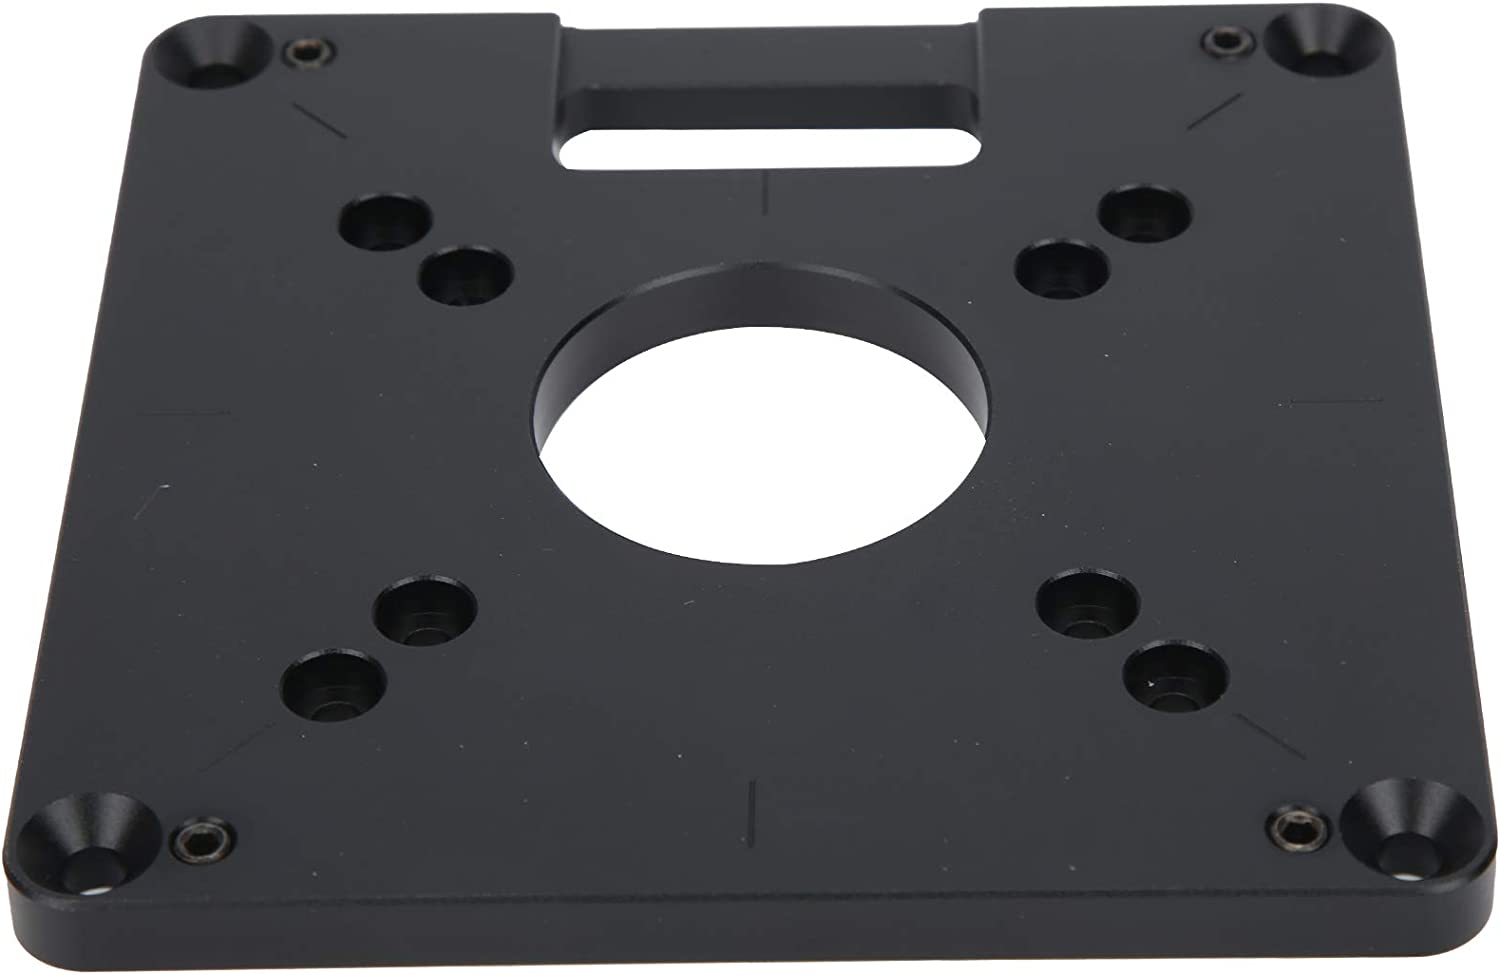 KUIDAMOS It is very popular Aluminium Recommendation Alloy Router Table Size Small T Plate